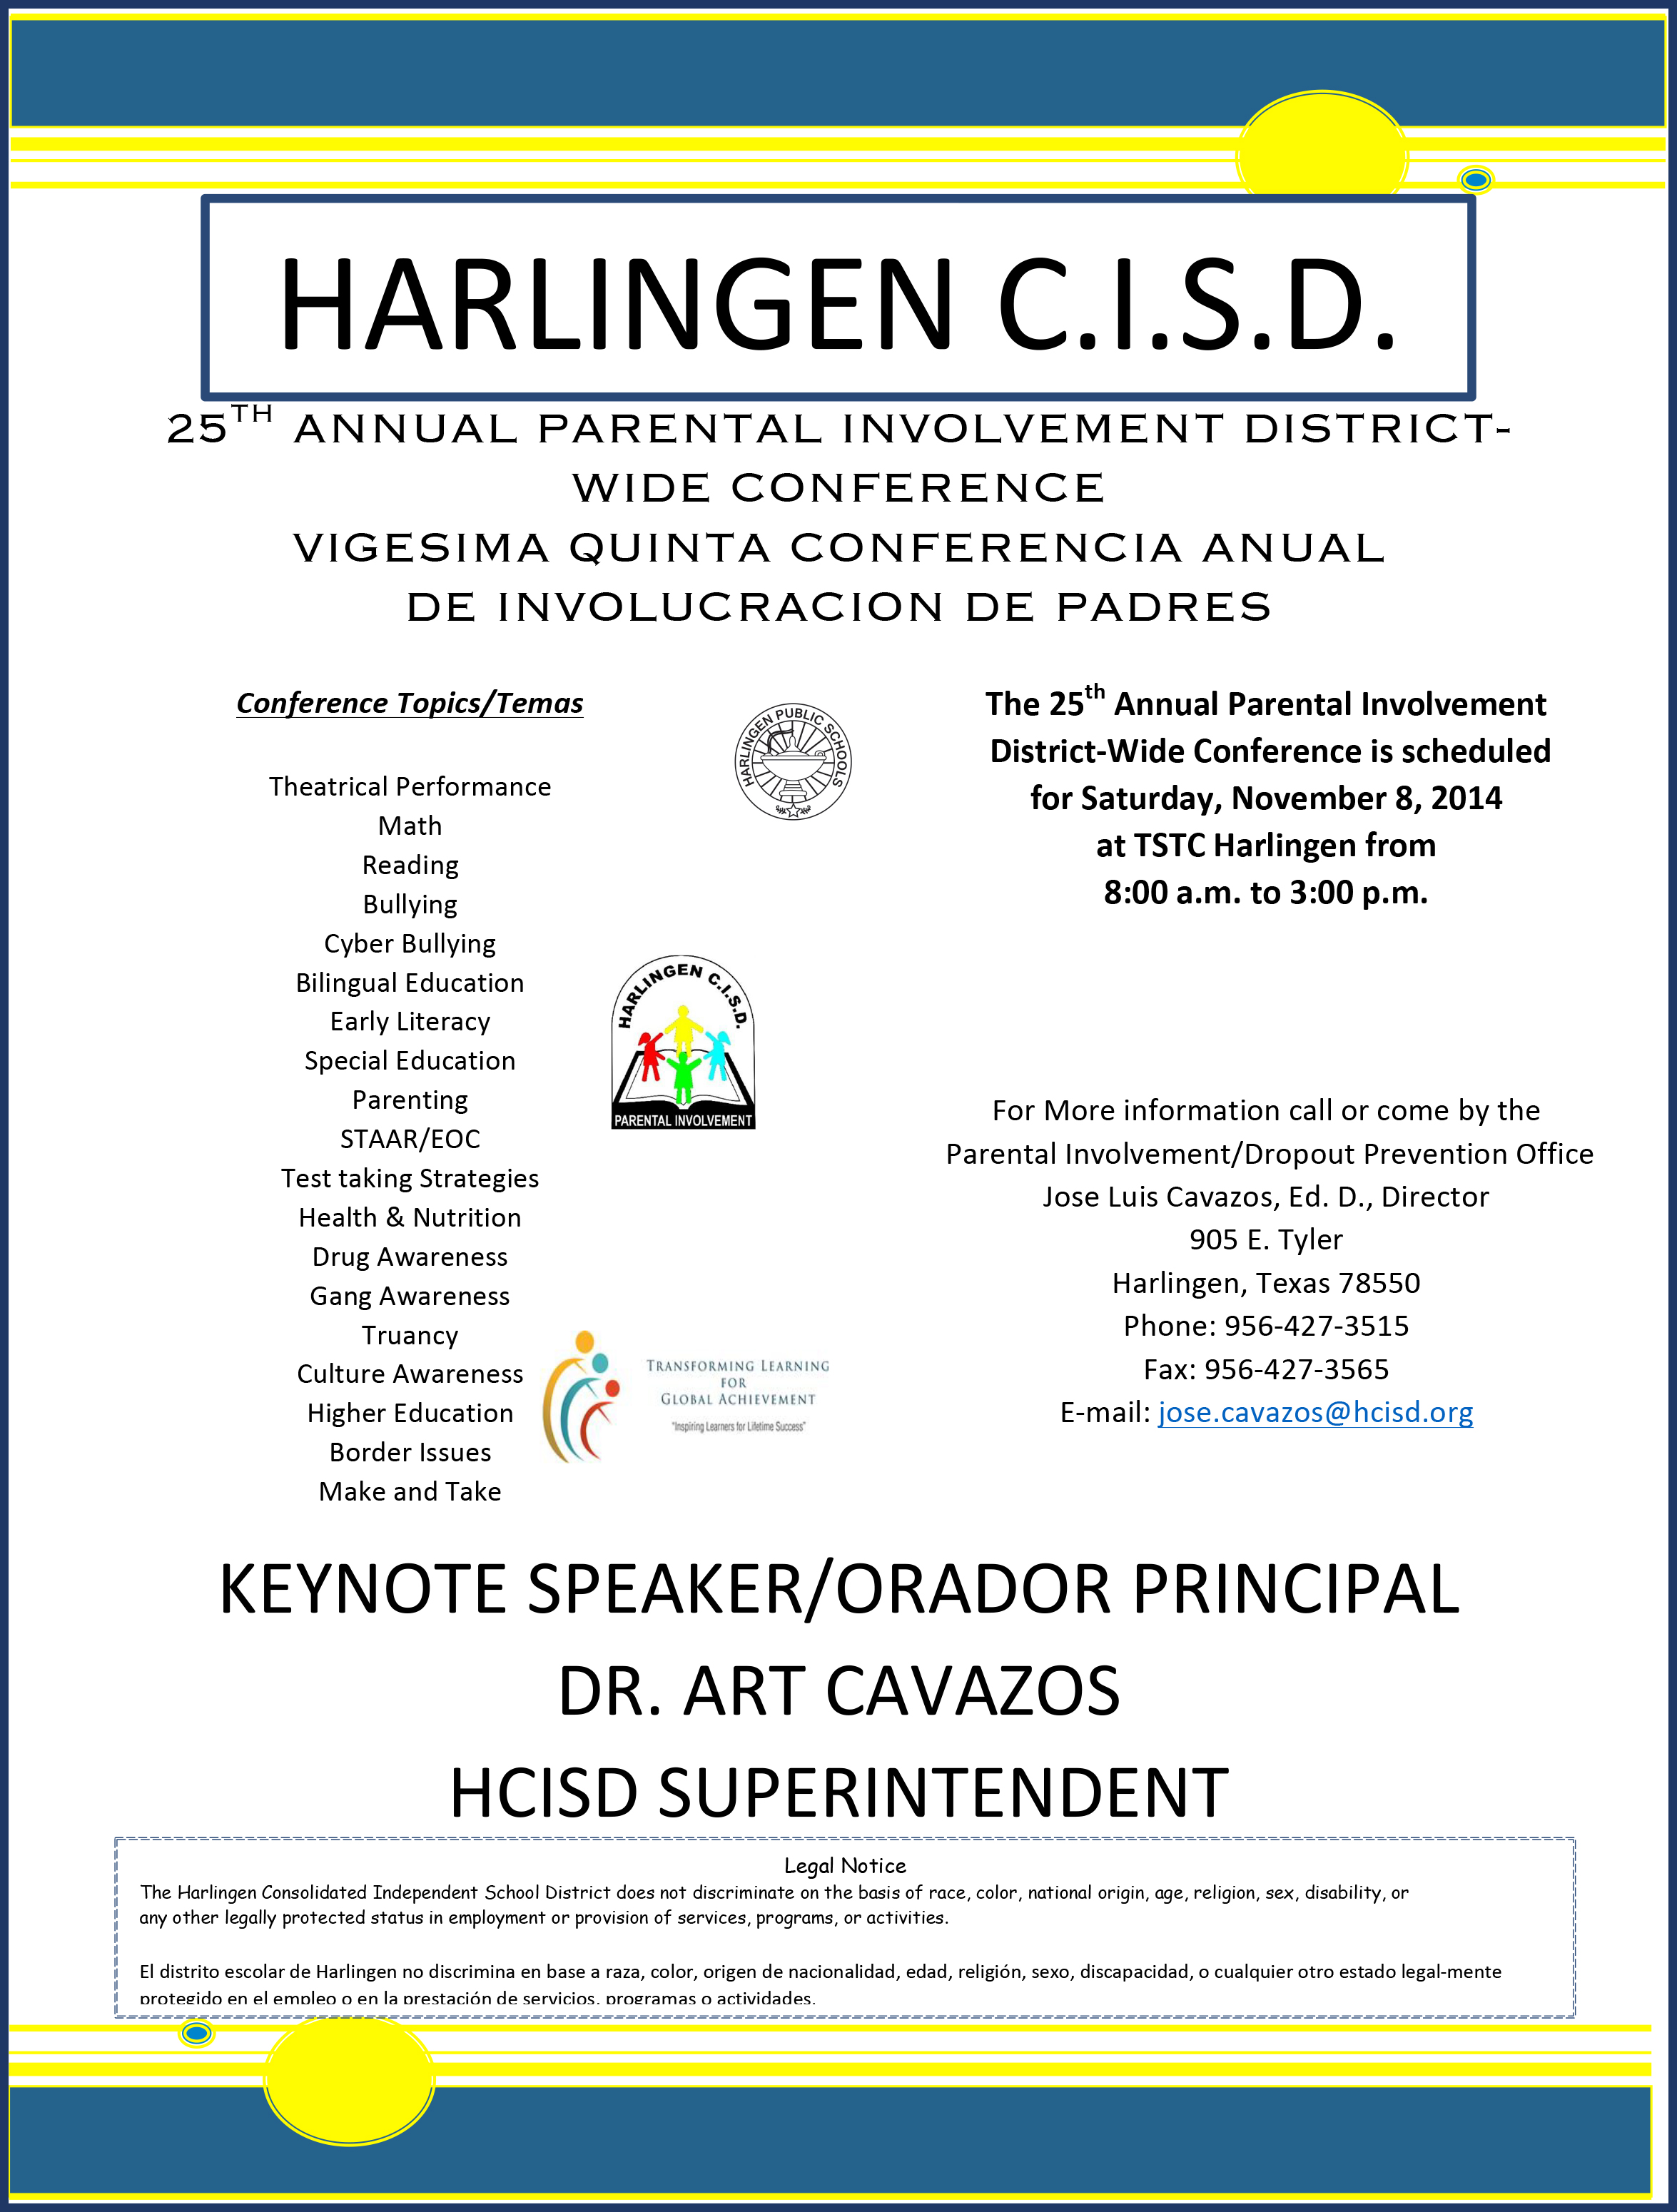 HCISD to host 25th annual Parental Involvement District-Wide Conference